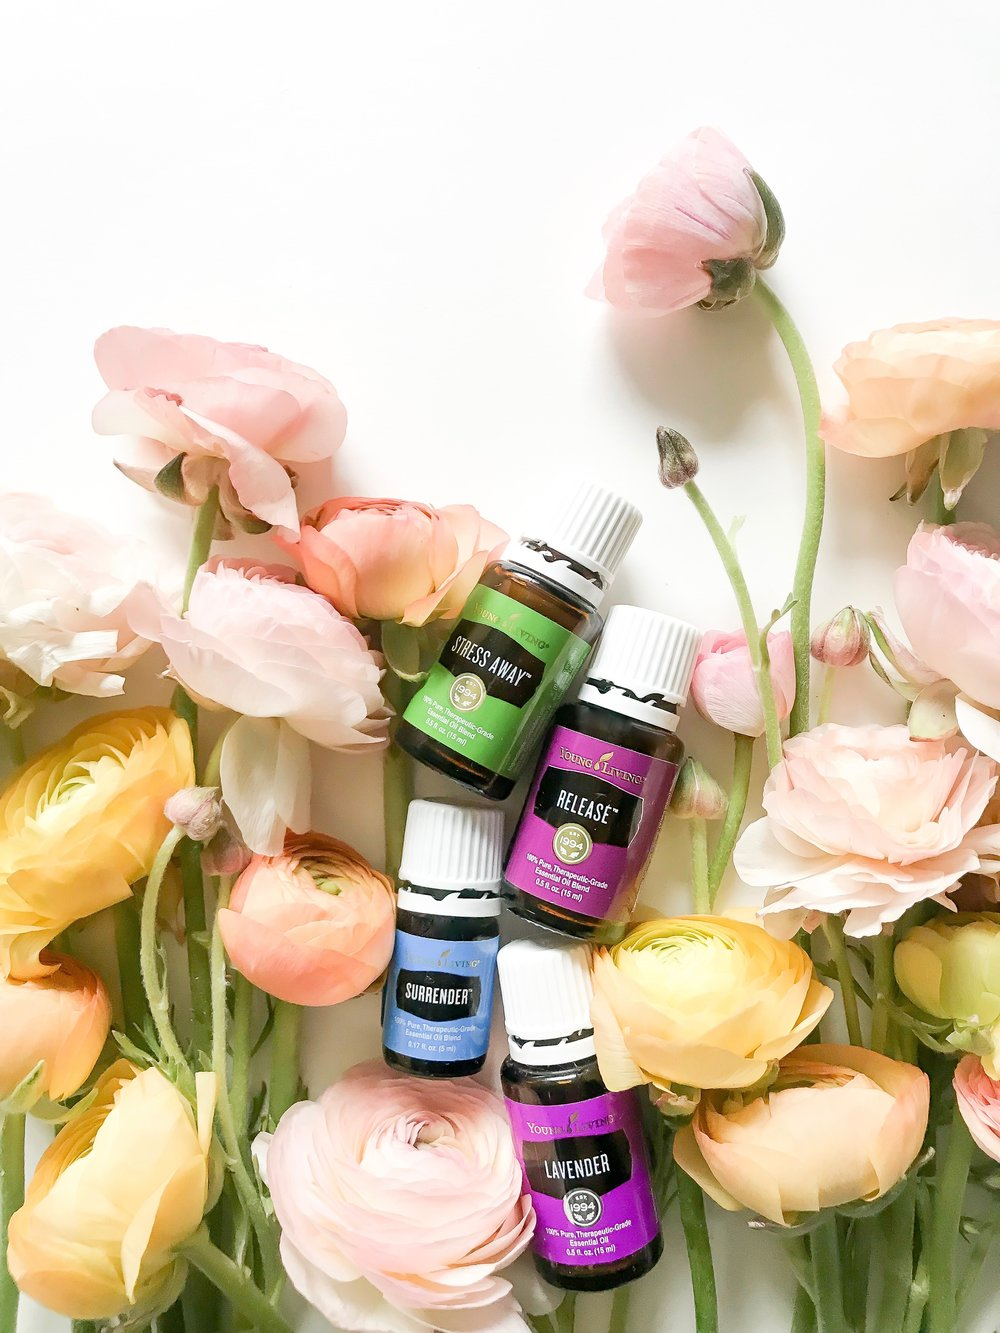 The fabulous four- Incredible emotional support oils, Stress Away, Release, Surrender and Lavender.